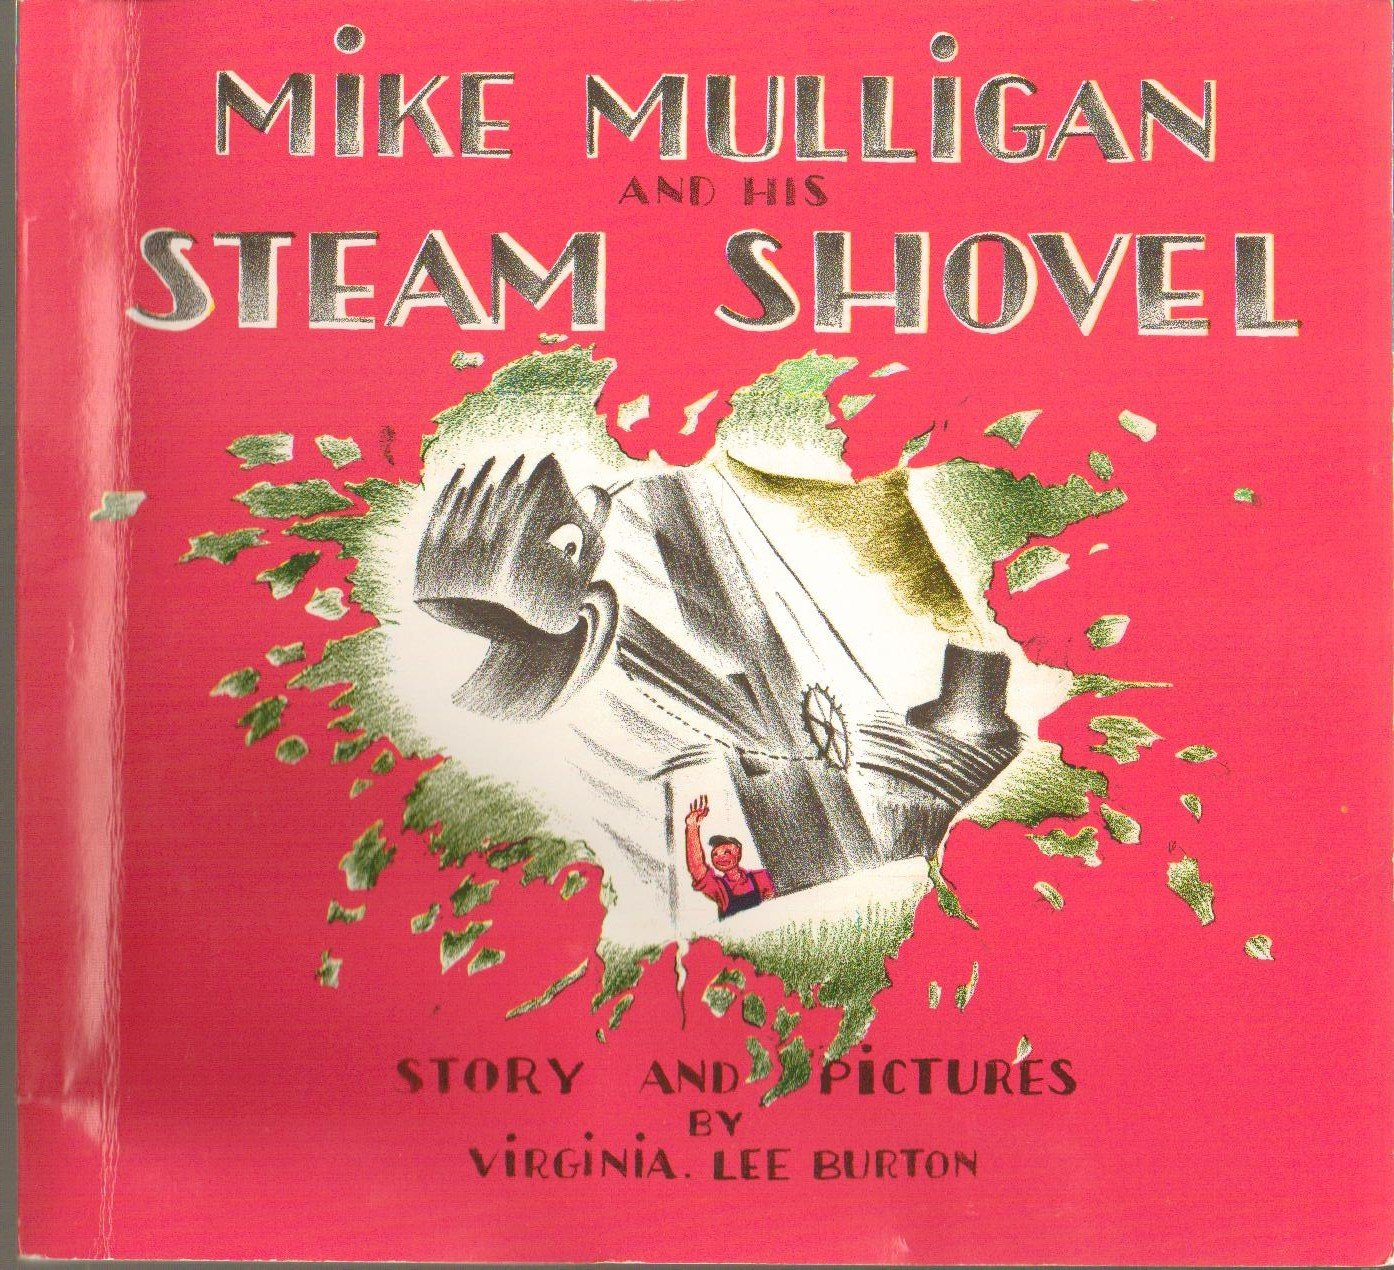 Mike Mulligan and His Steam Shovel - Paperback - From Original 1939 Edition, Copyright Renewed 1967 Edition, 54th Printing 2007 pdf